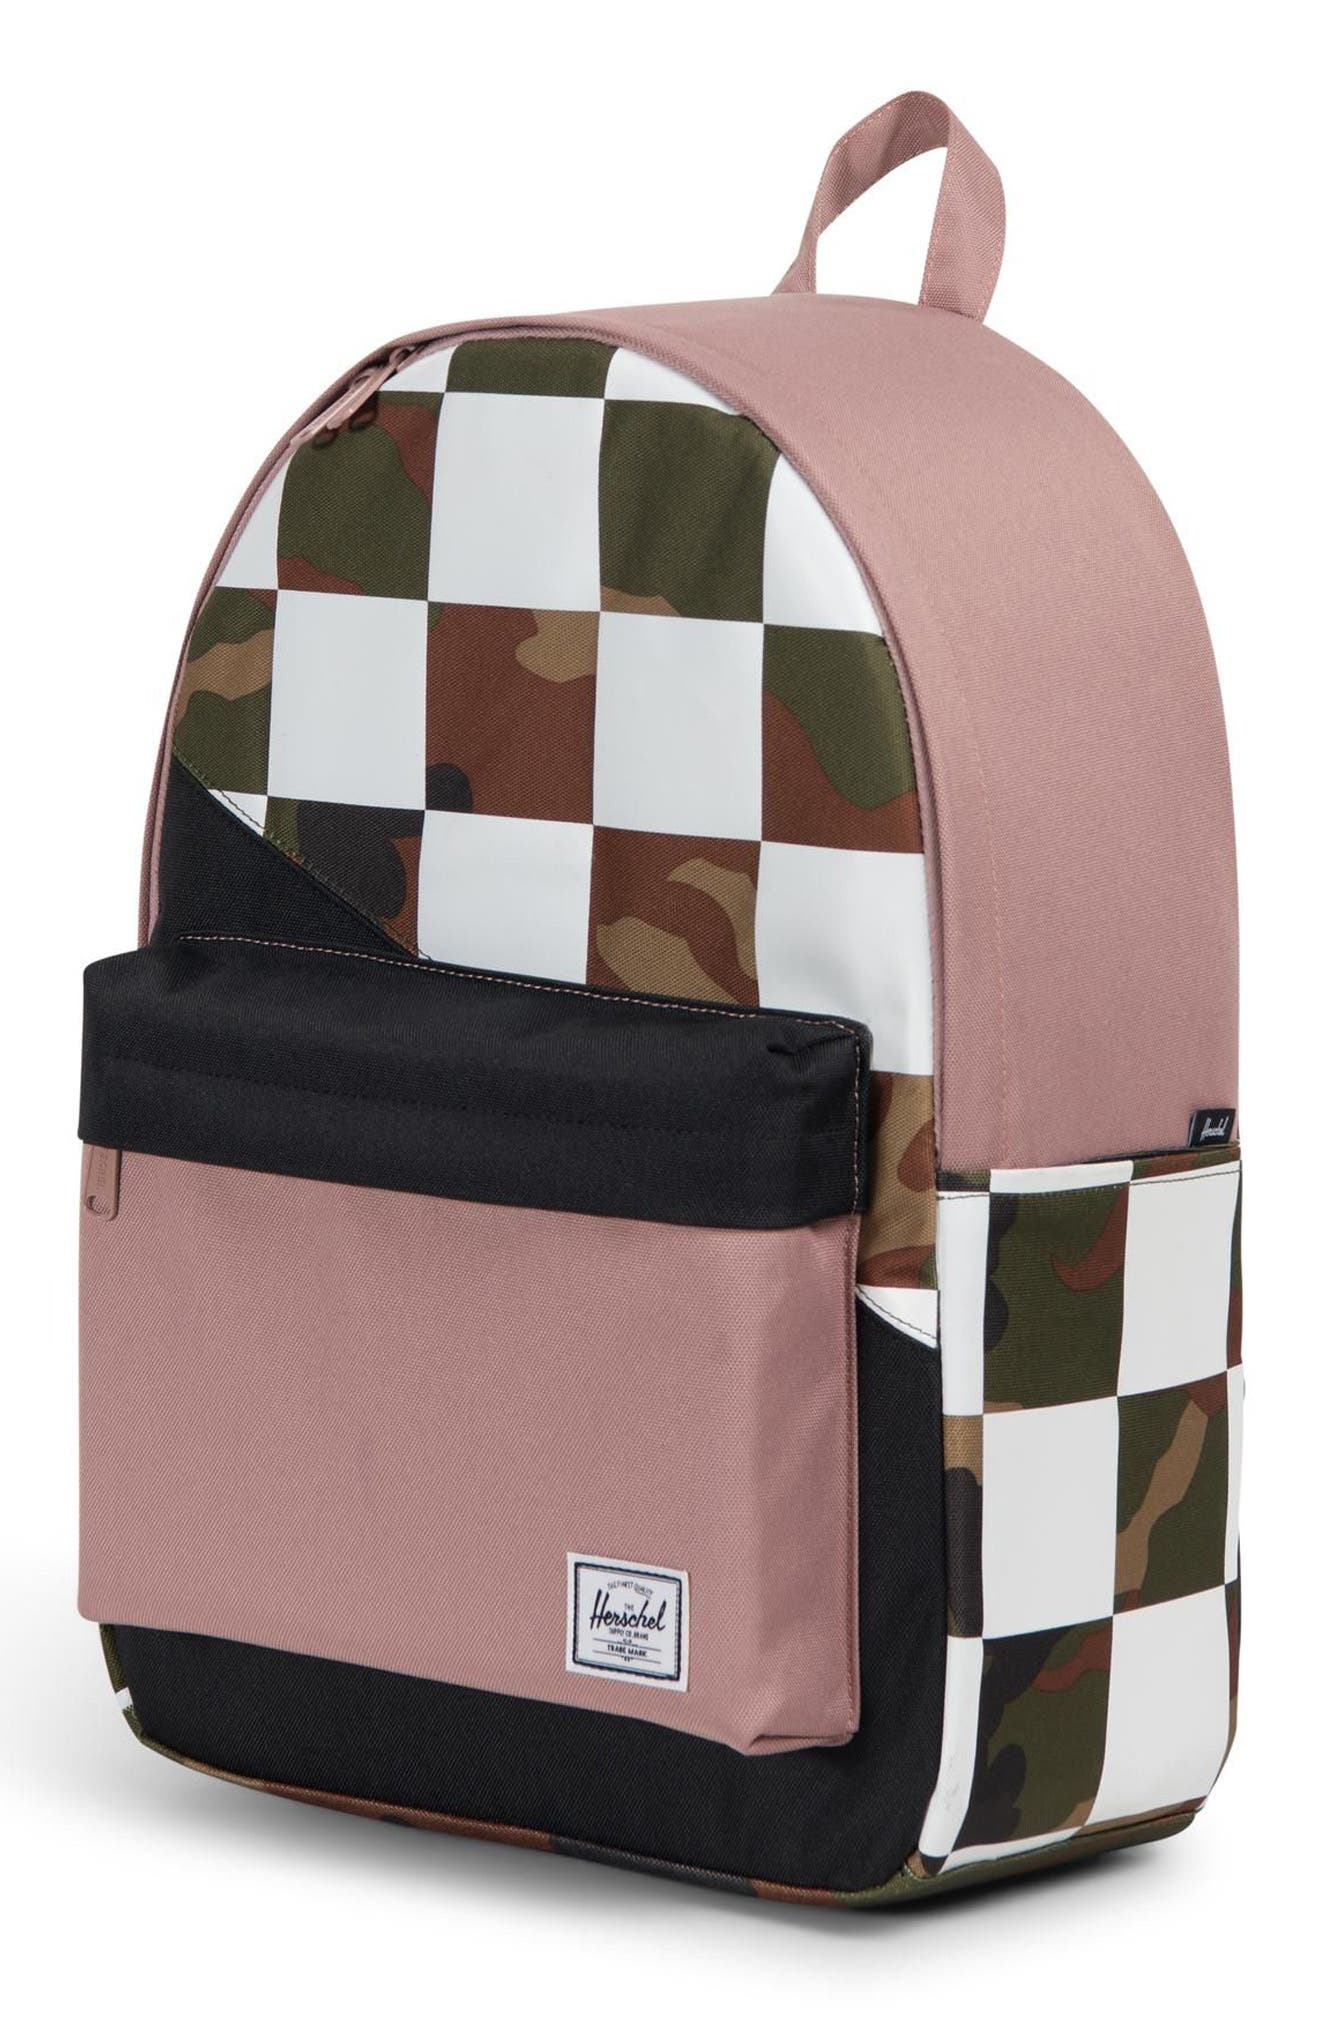 Classic Kaleidoscope Backpack,                             Alternate thumbnail 5, color,                             WOODLAND/ ASH ROSE/ CHECKER